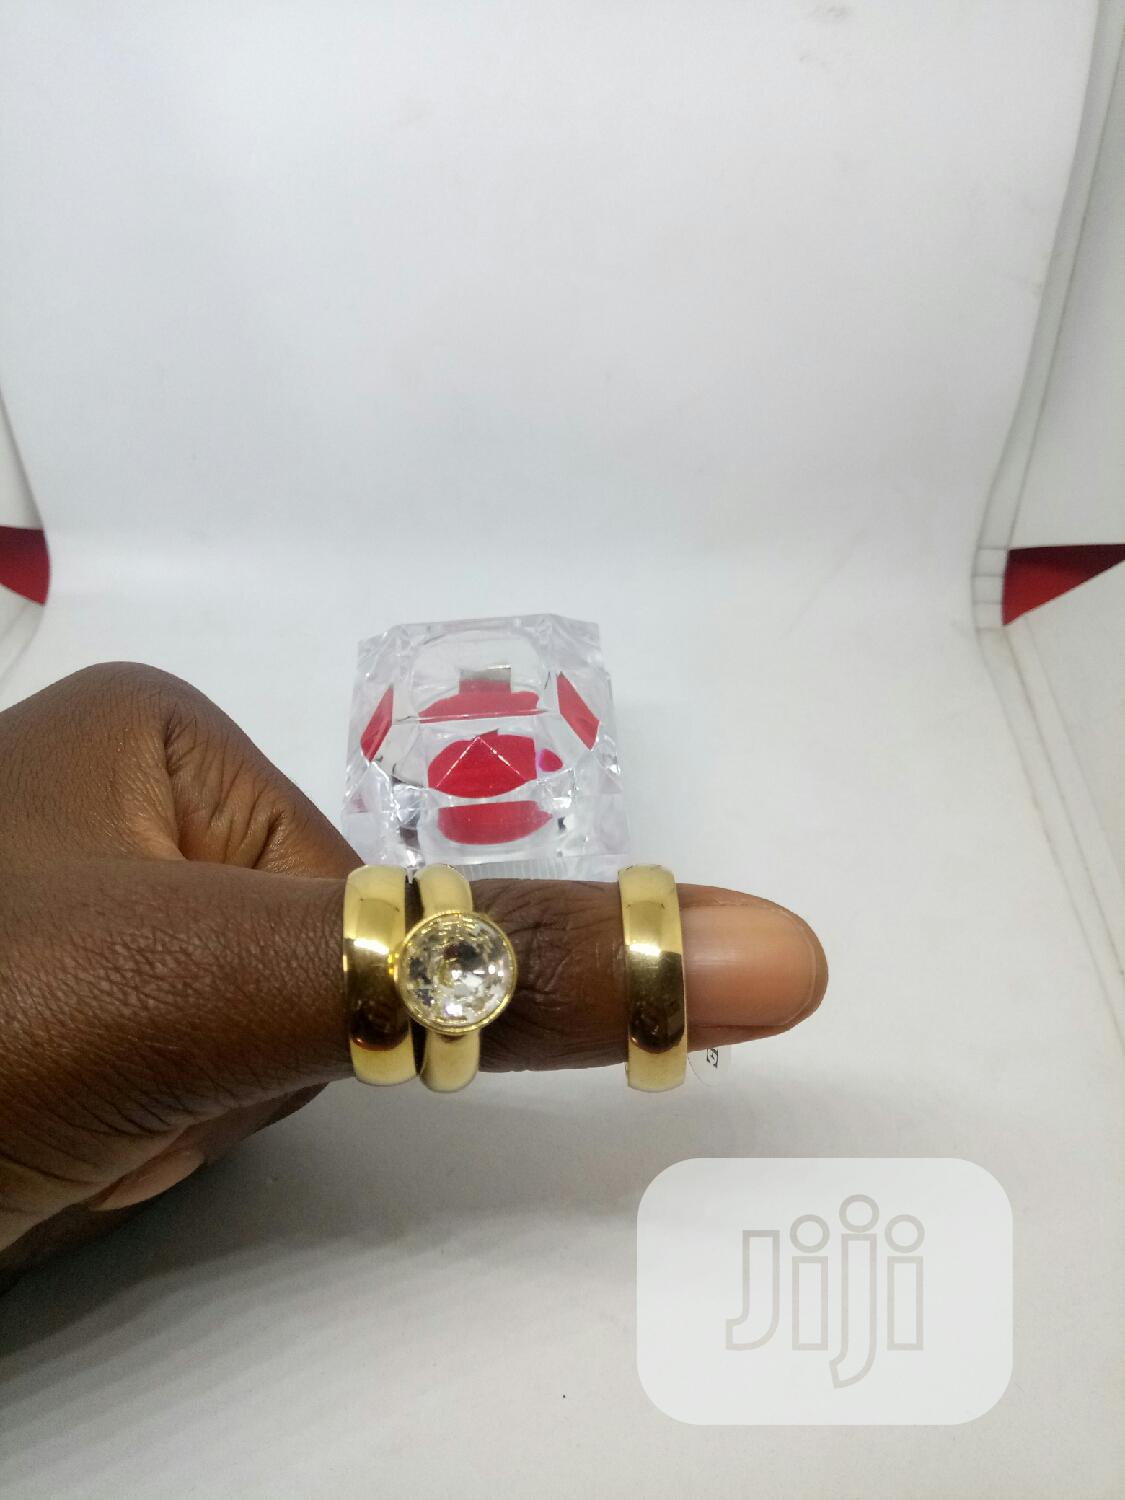 Rose Indiana Couples Set of Wedding Ring 0012 - Gold | Wedding Wear & Accessories for sale in Ojodu, Lagos State, Nigeria